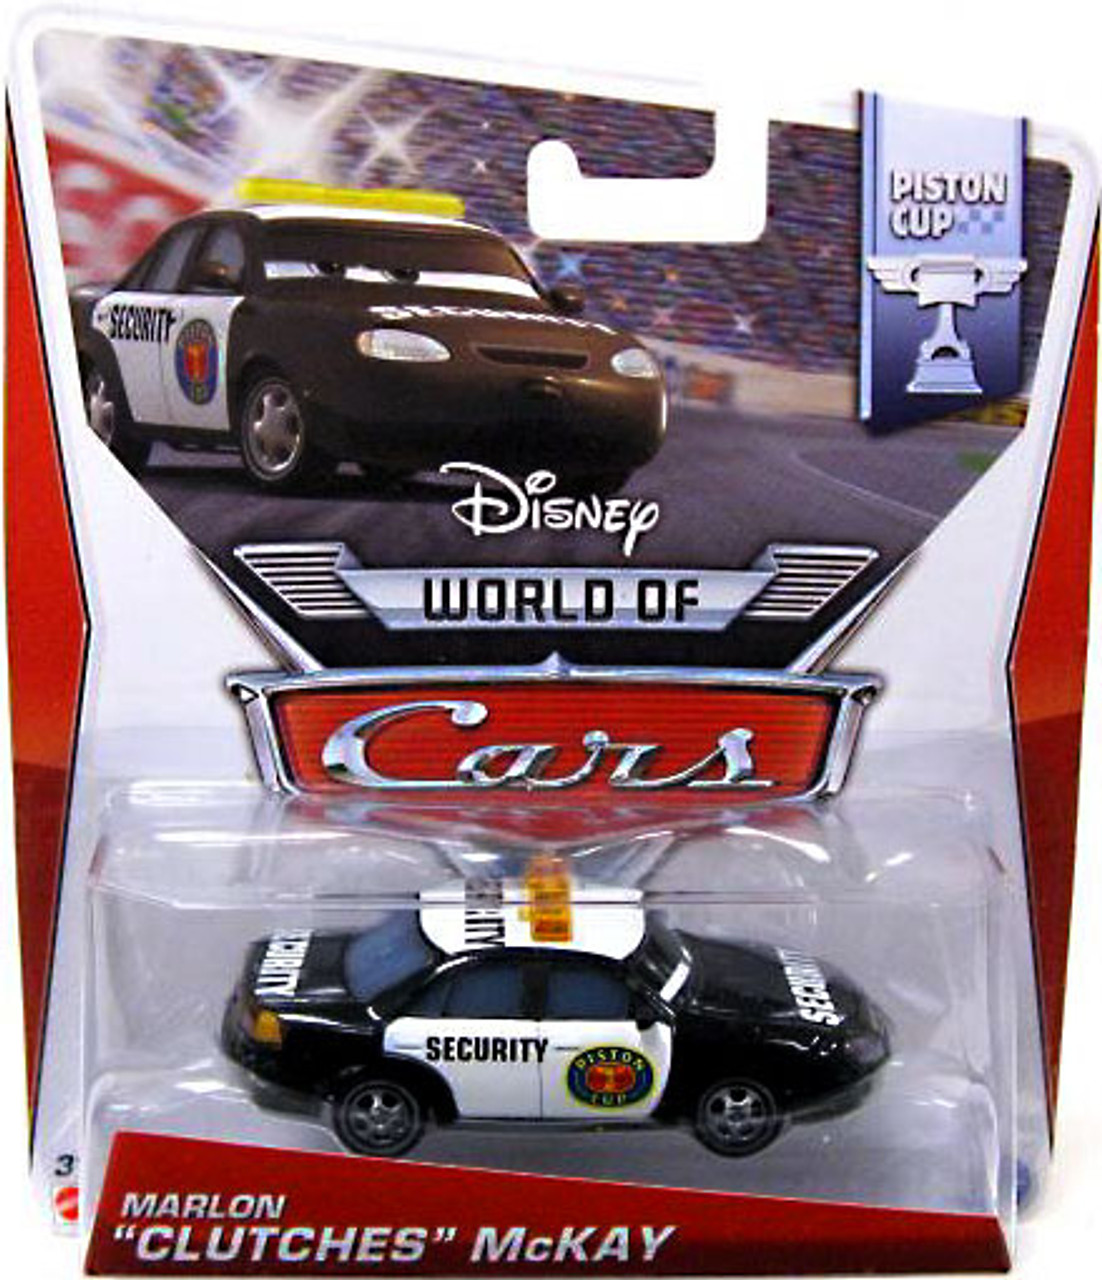 Clutches For Cars : Disney cars the world of series marlon clutches